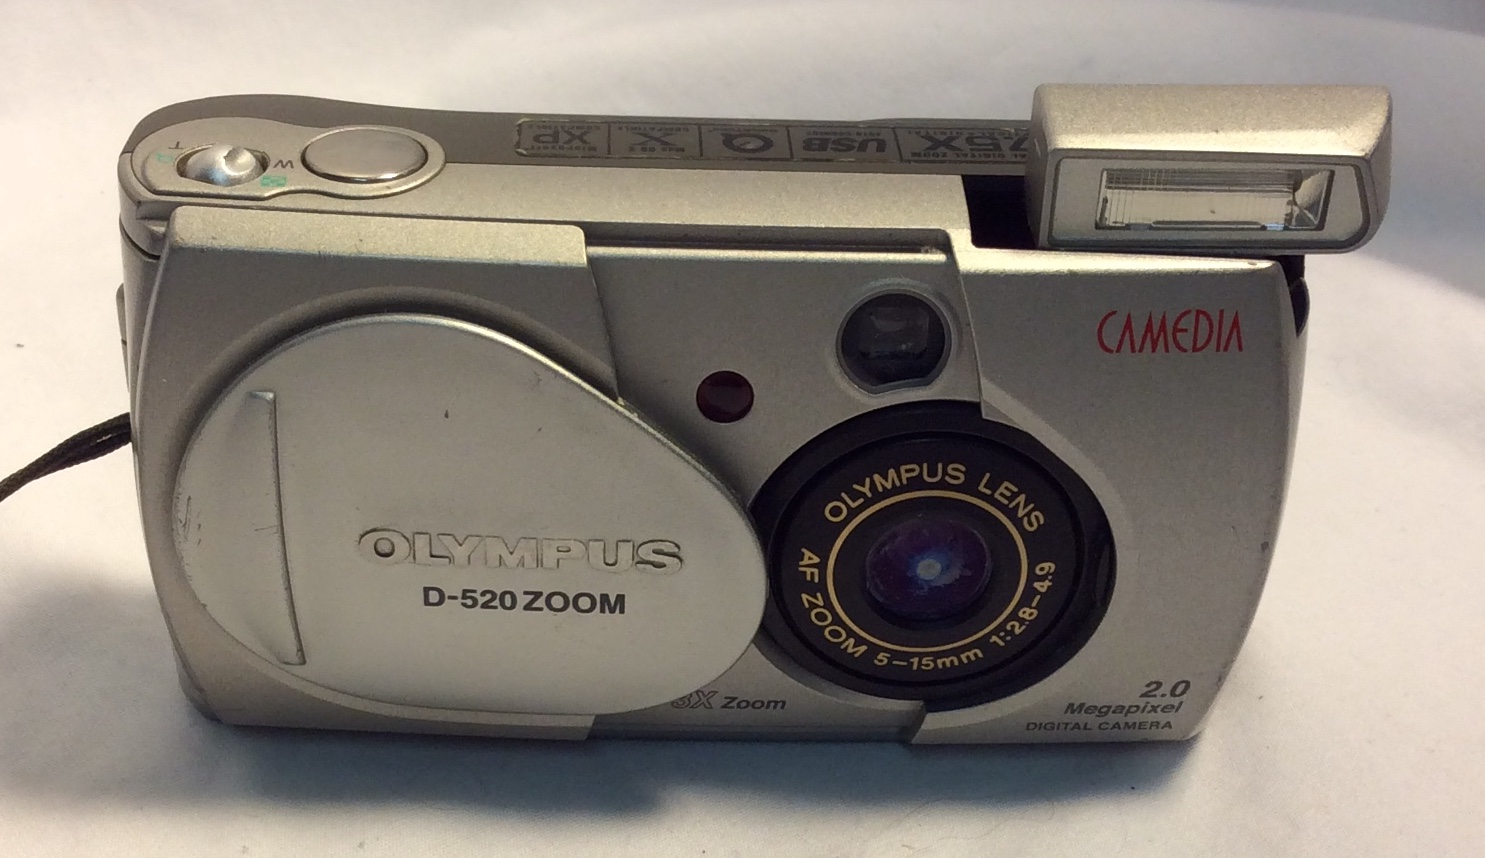 Olympus Camedia D-520 Zoom (non-working) digital camera